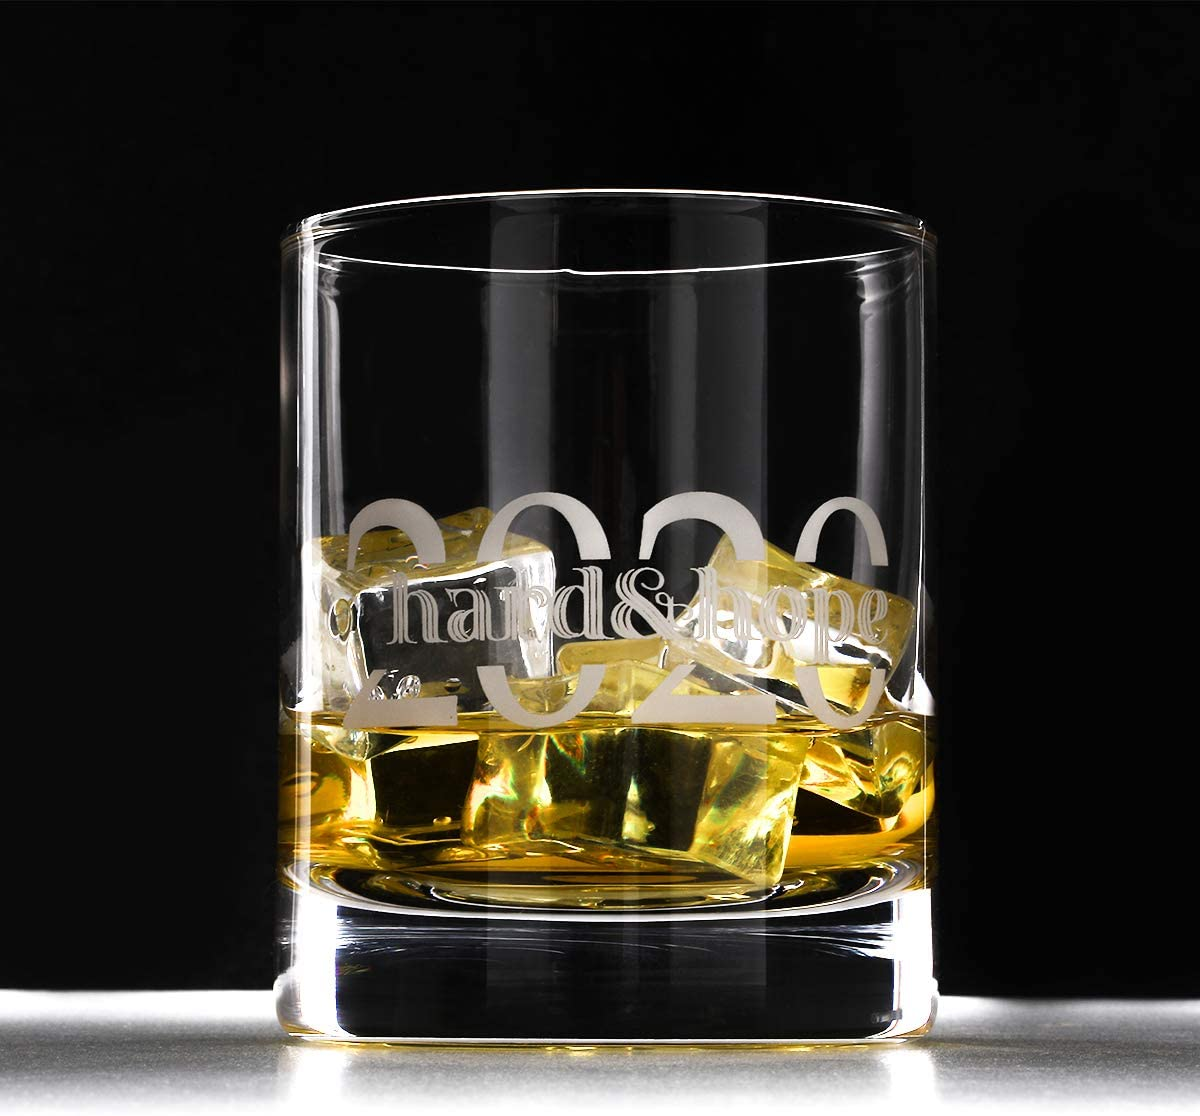 KRY Whiskey Glasses Set of 2 Souvenir for 2020 - Old Fashioned Glass Whiskey Decanter Set- Rocks Lowball Glass Crystal Scotch Glasses